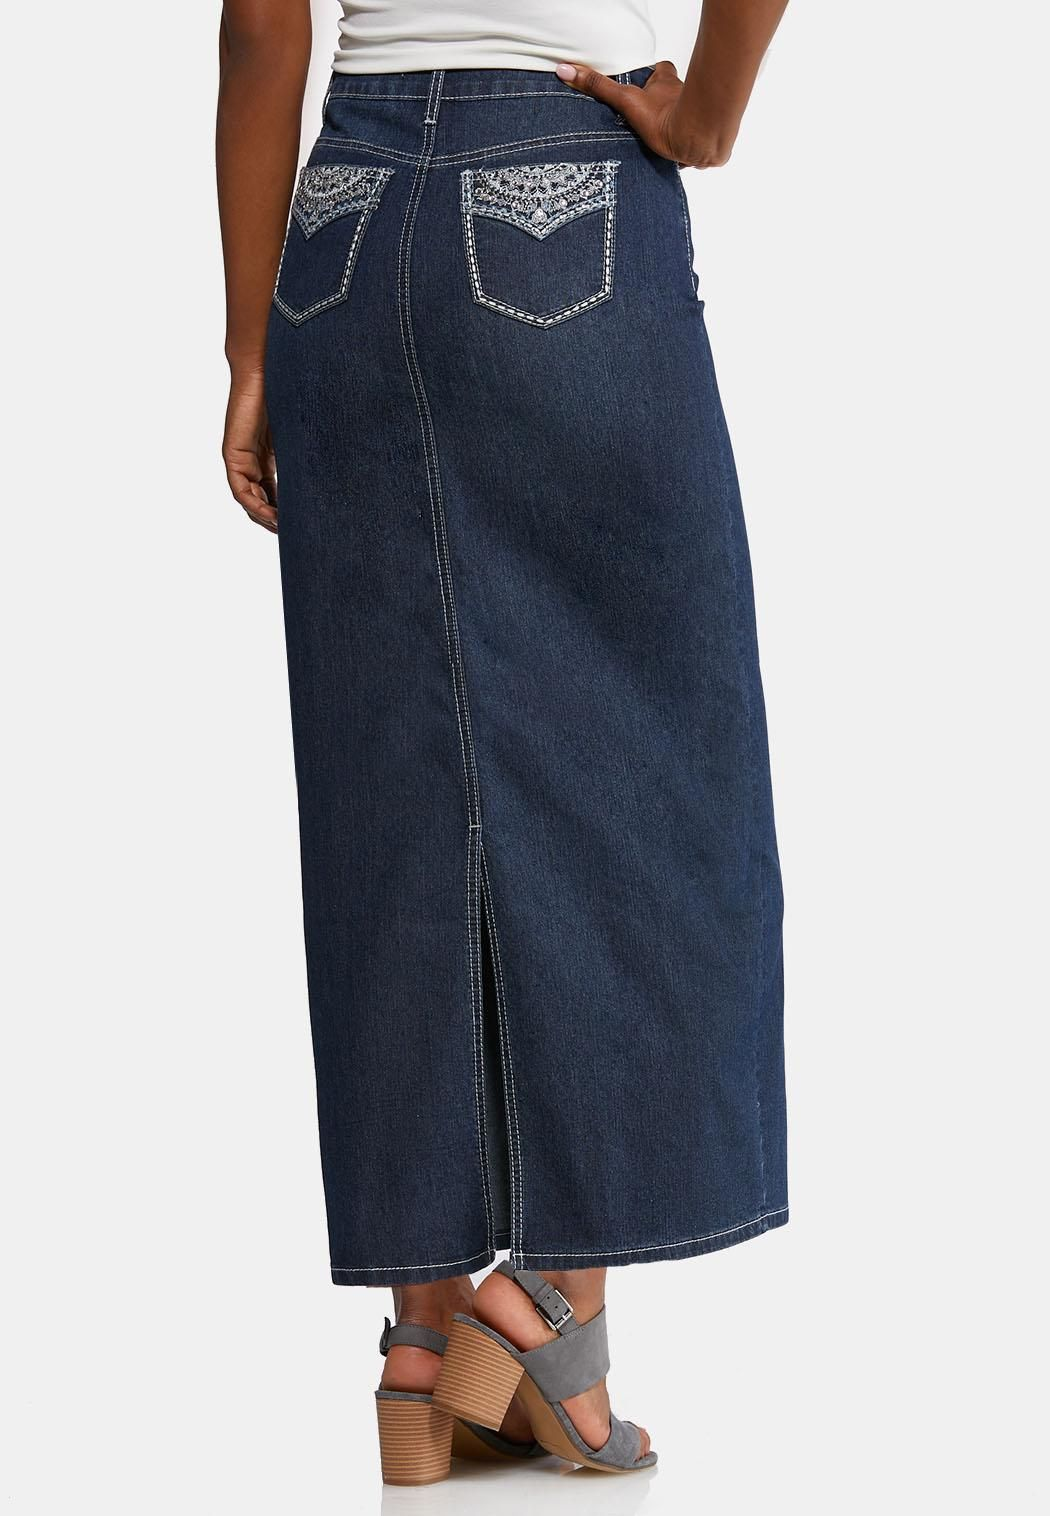 a39c8df2b Plus Size Bling Pocket Denim Maxi Skirt Skirts Cato Fashions in 2019 ...